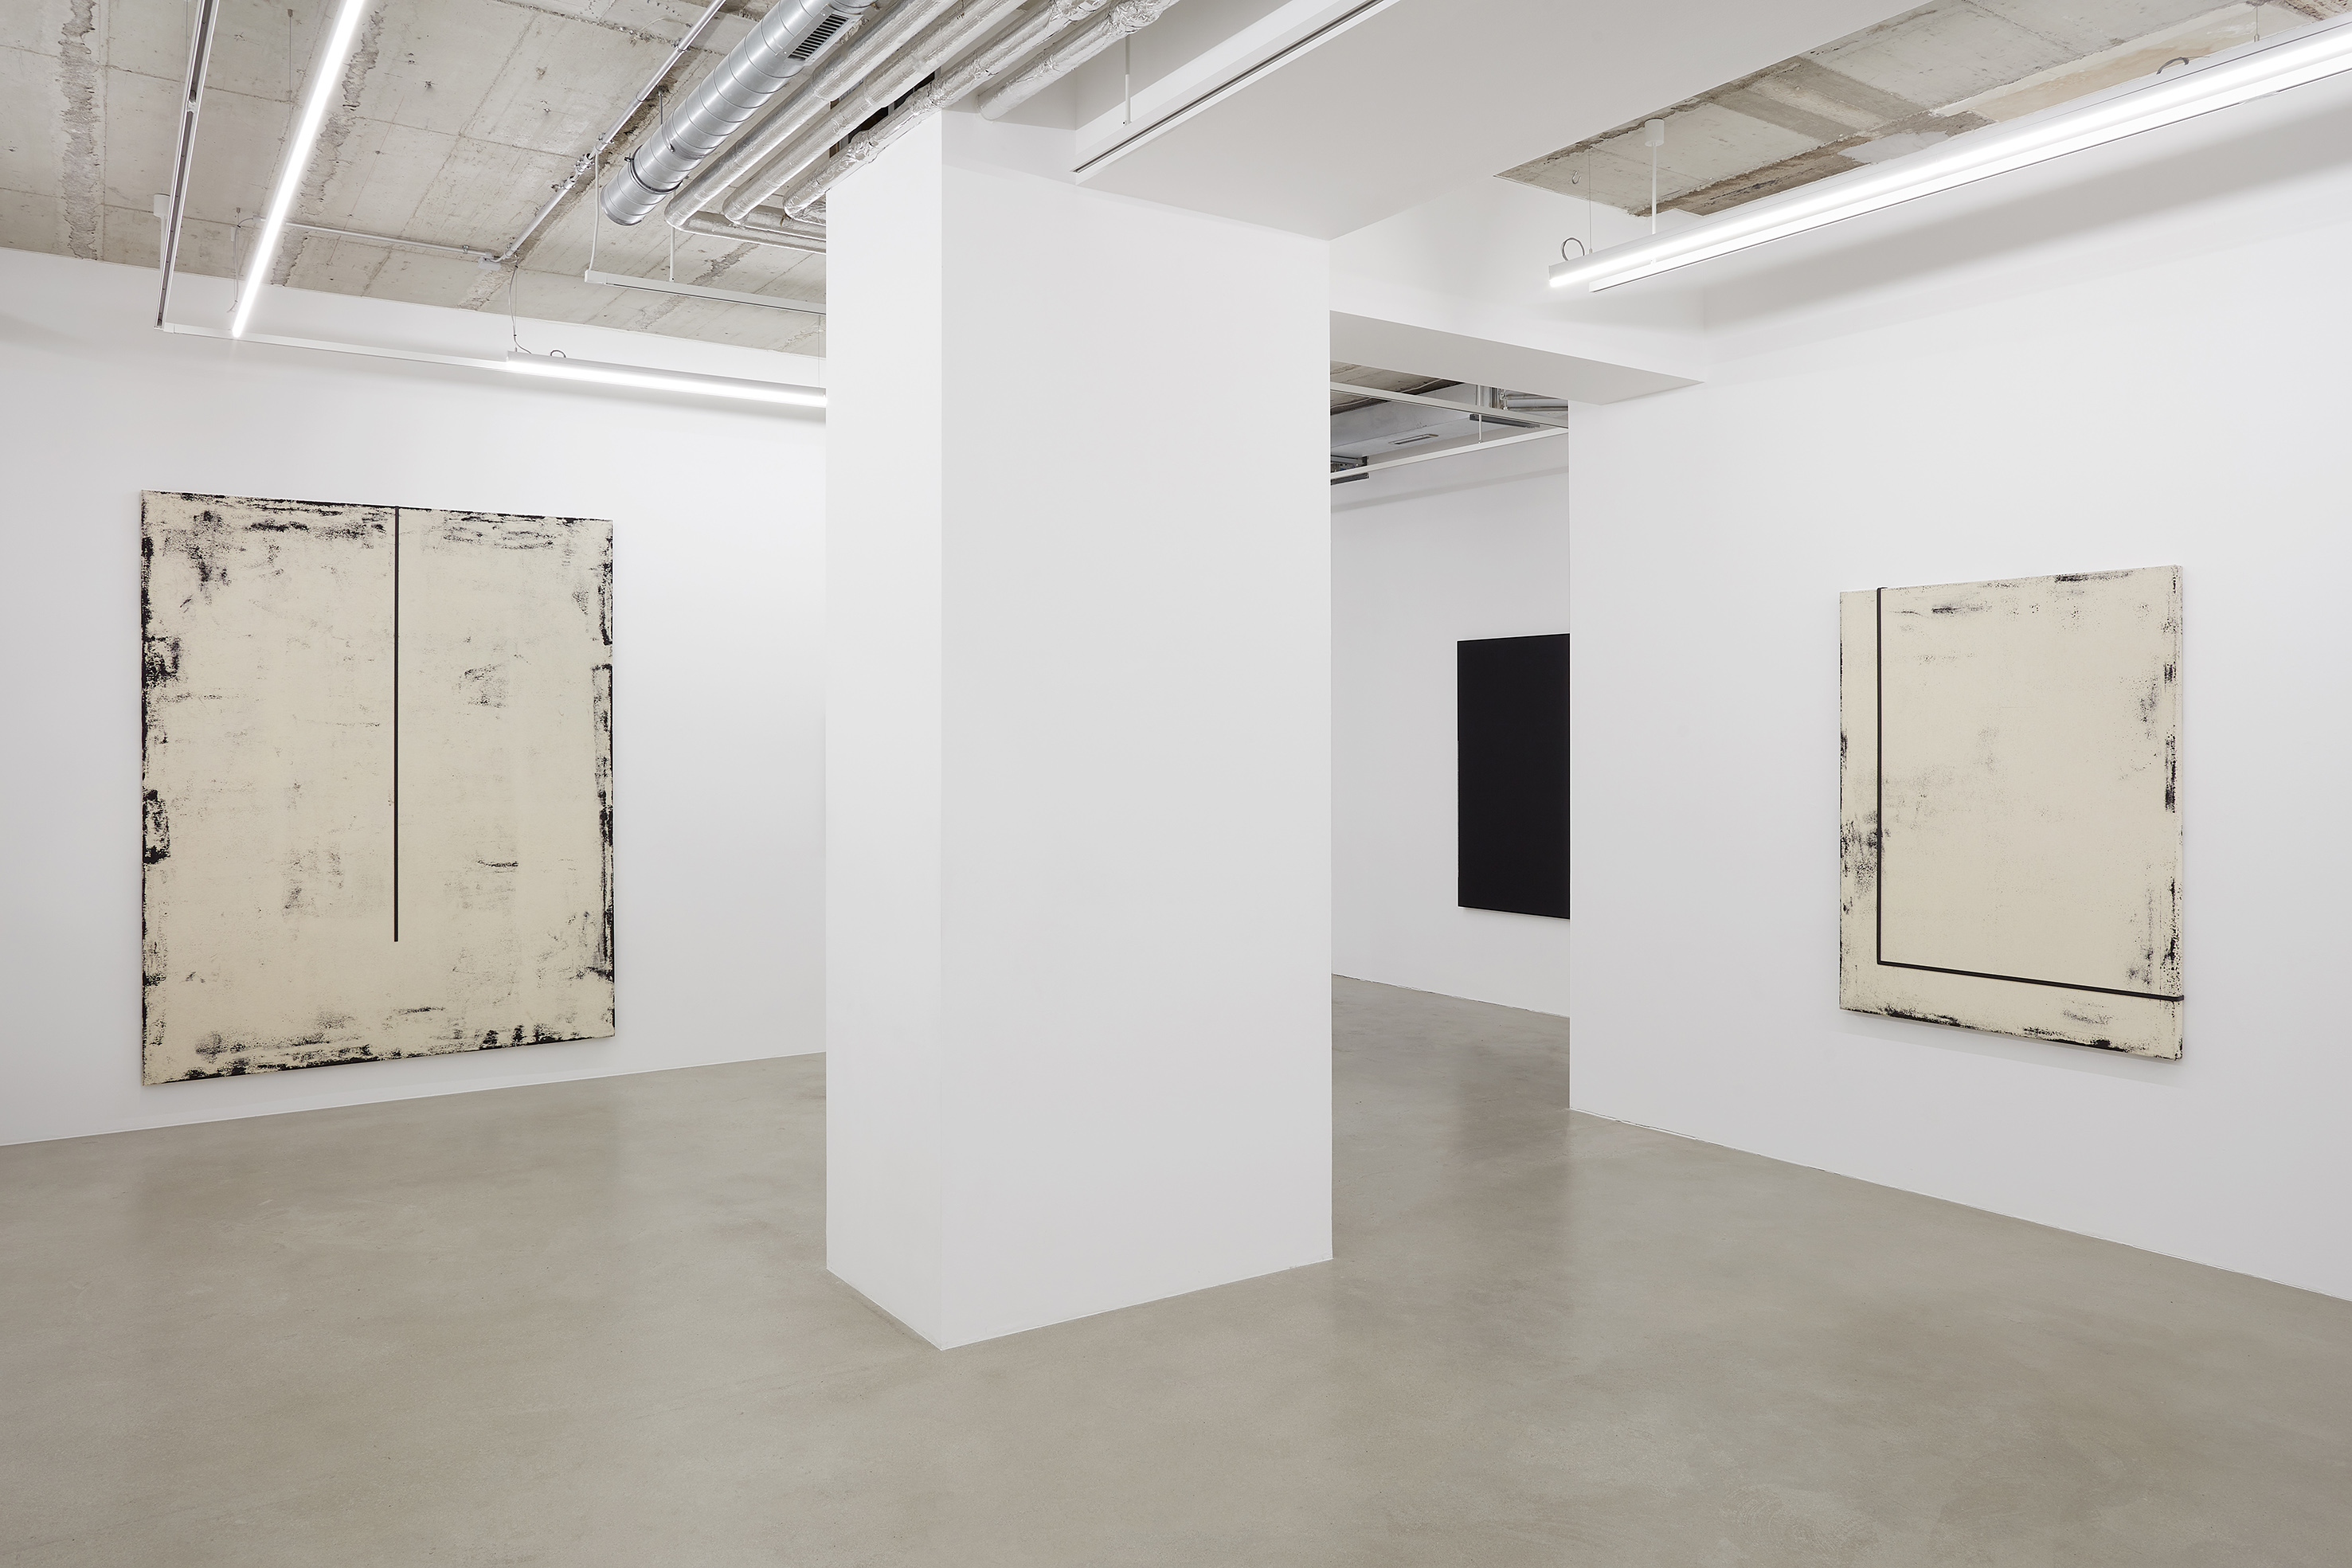 Installation view Laura Sachs conversations 2020 at Setareh X